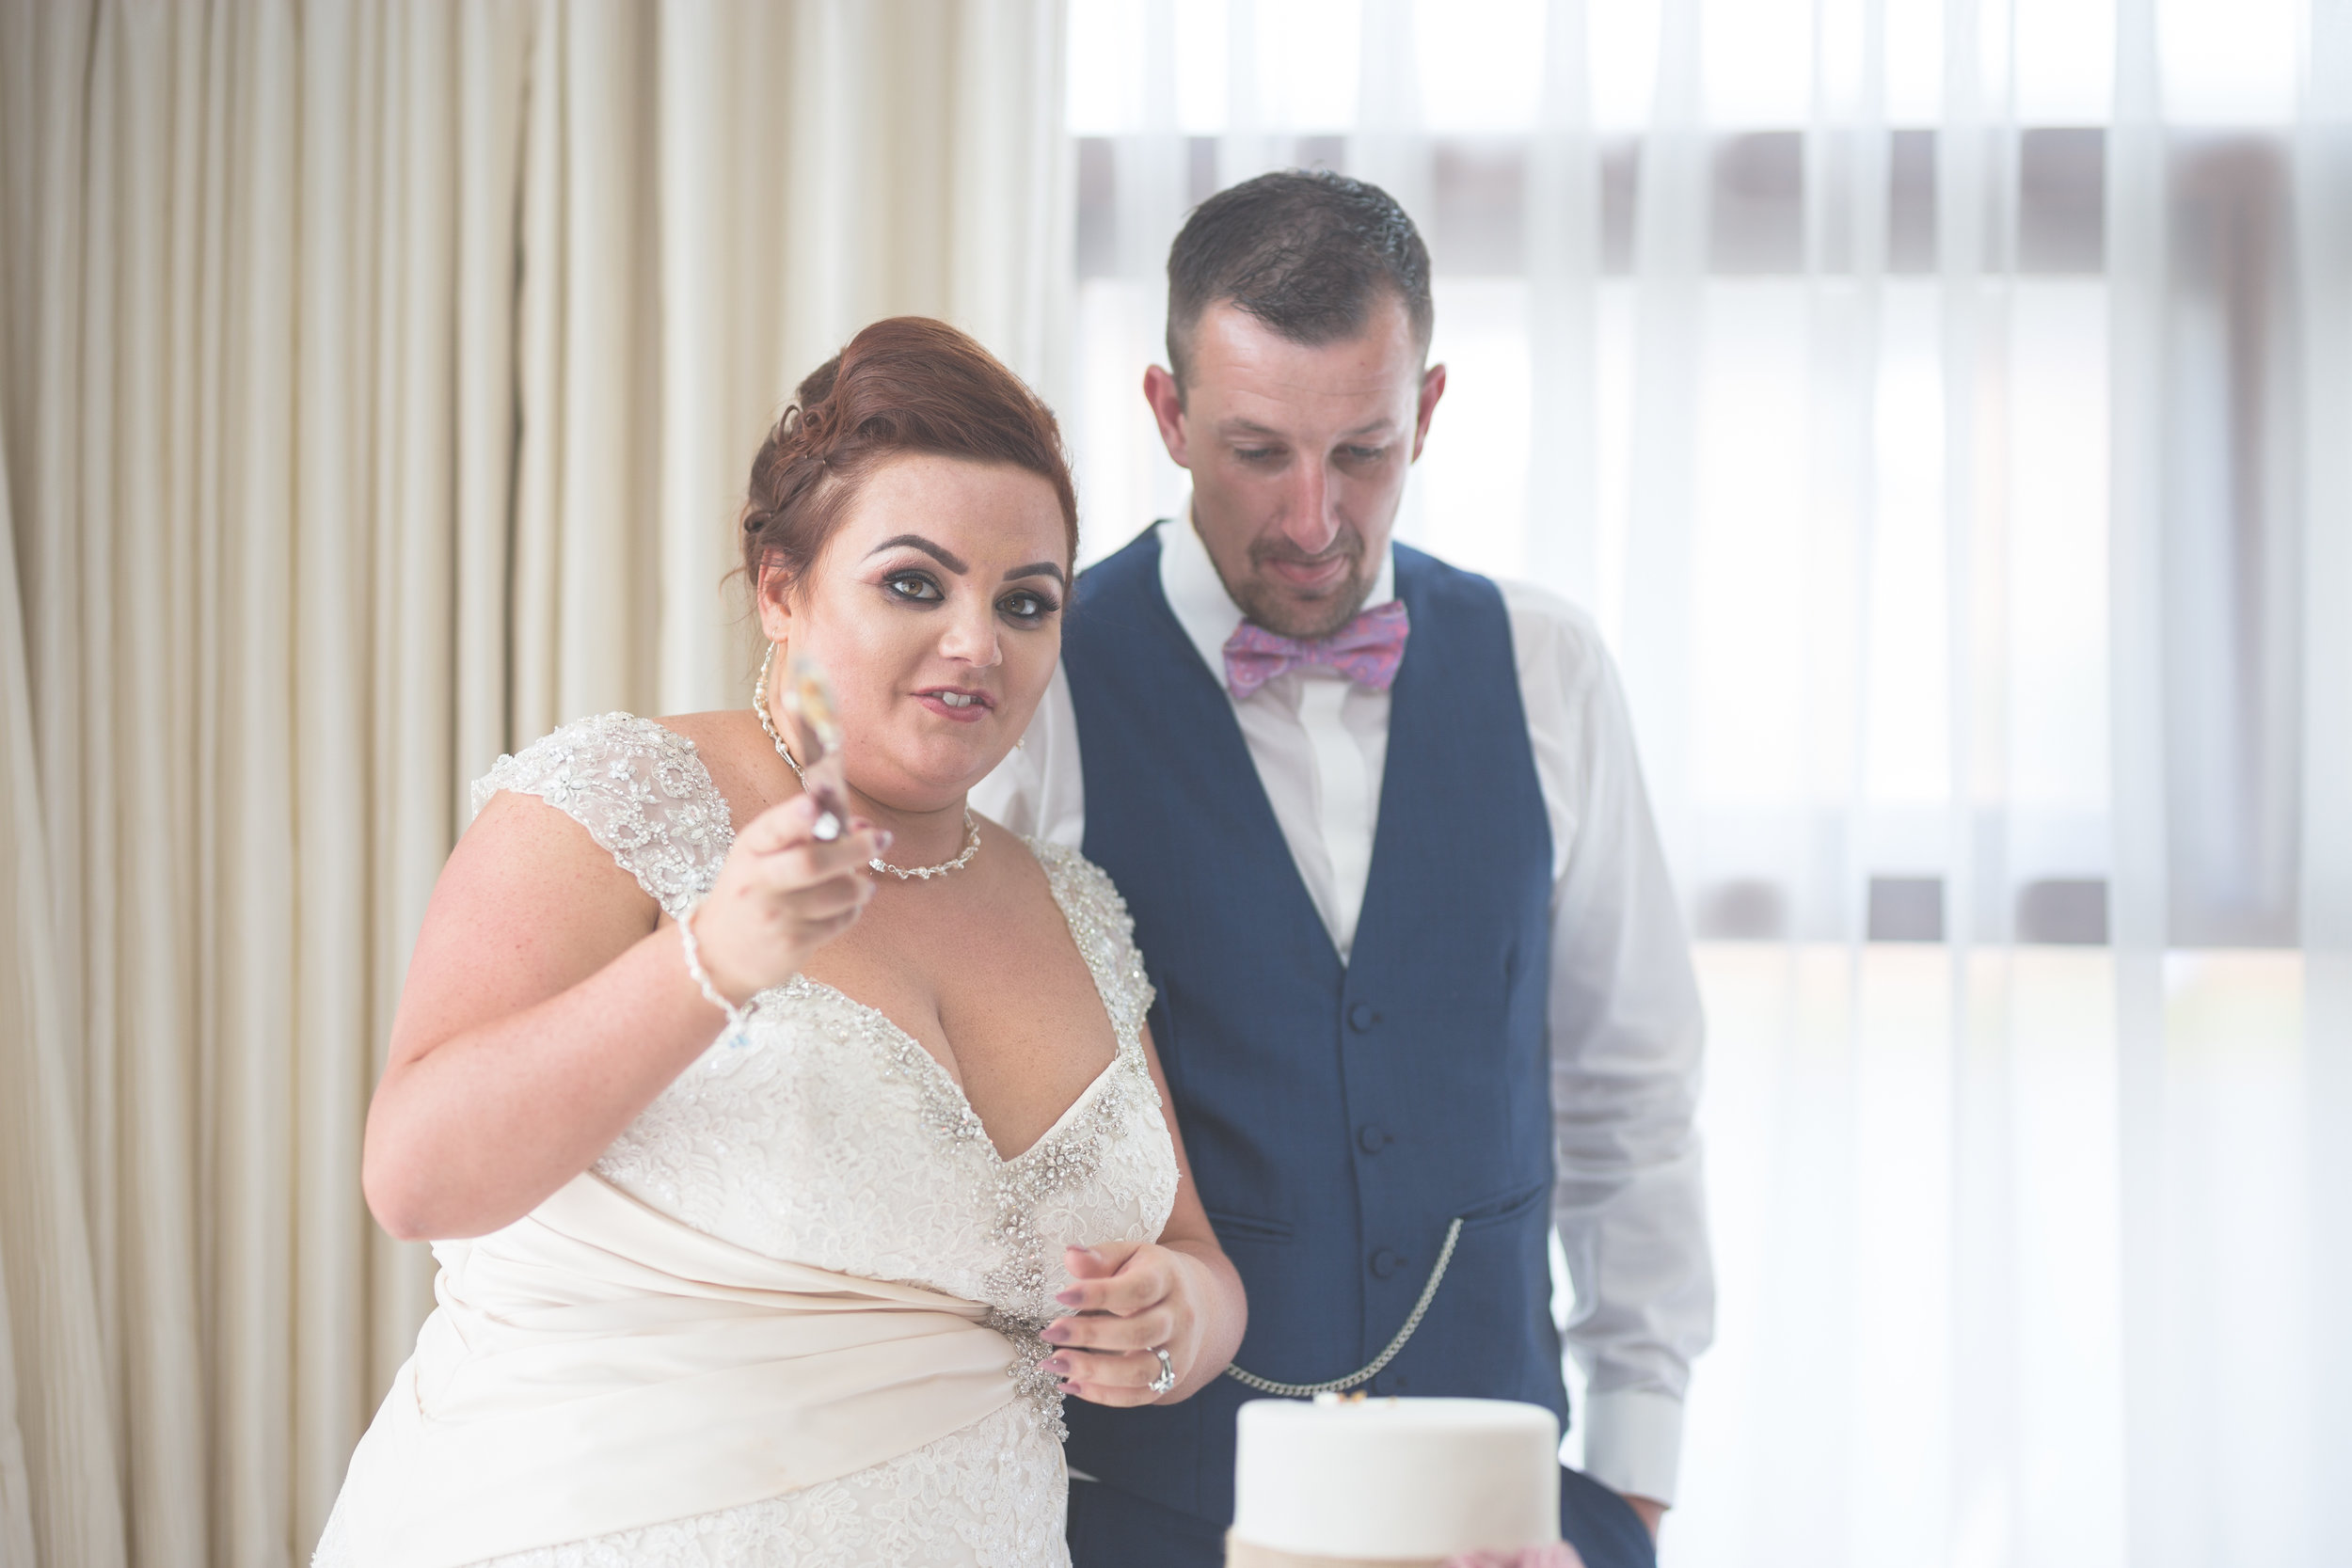 Antoinette & Stephen - Speeches | Brian McEwan Photography | Wedding Photographer Northern Ireland 104.jpg